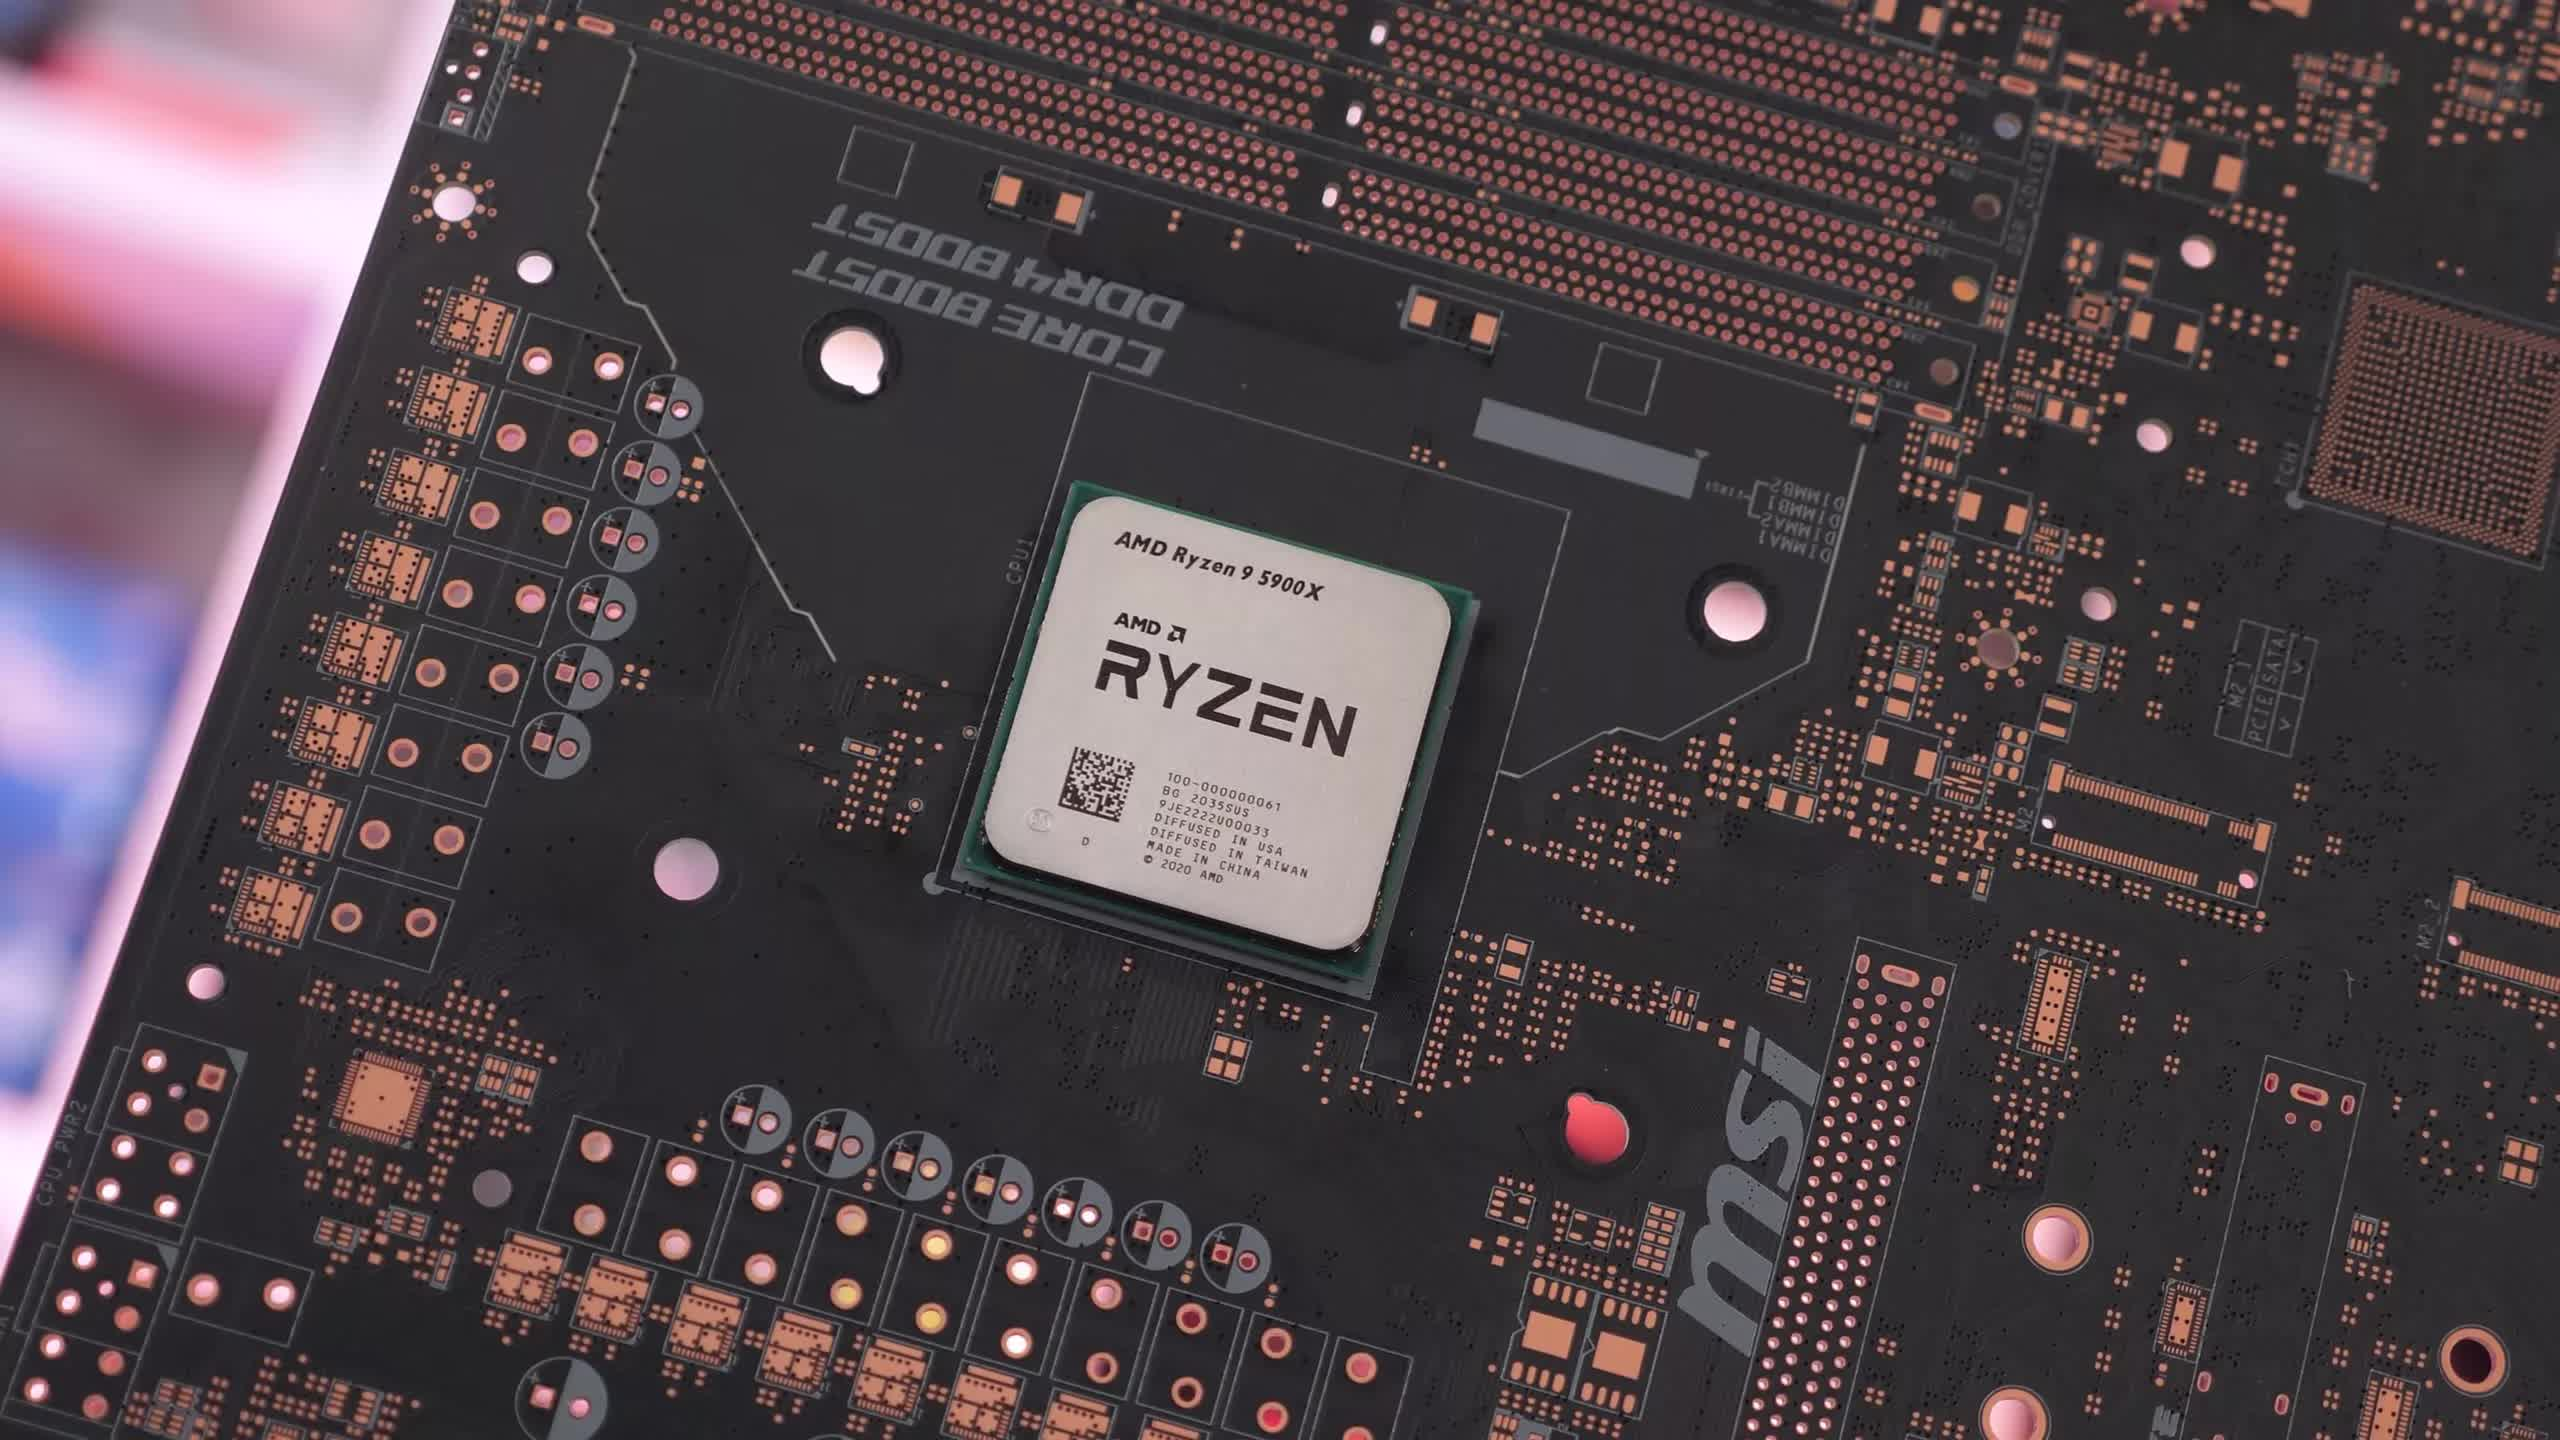 New leak reveals upcoming Ryzen 5000G APU specifications